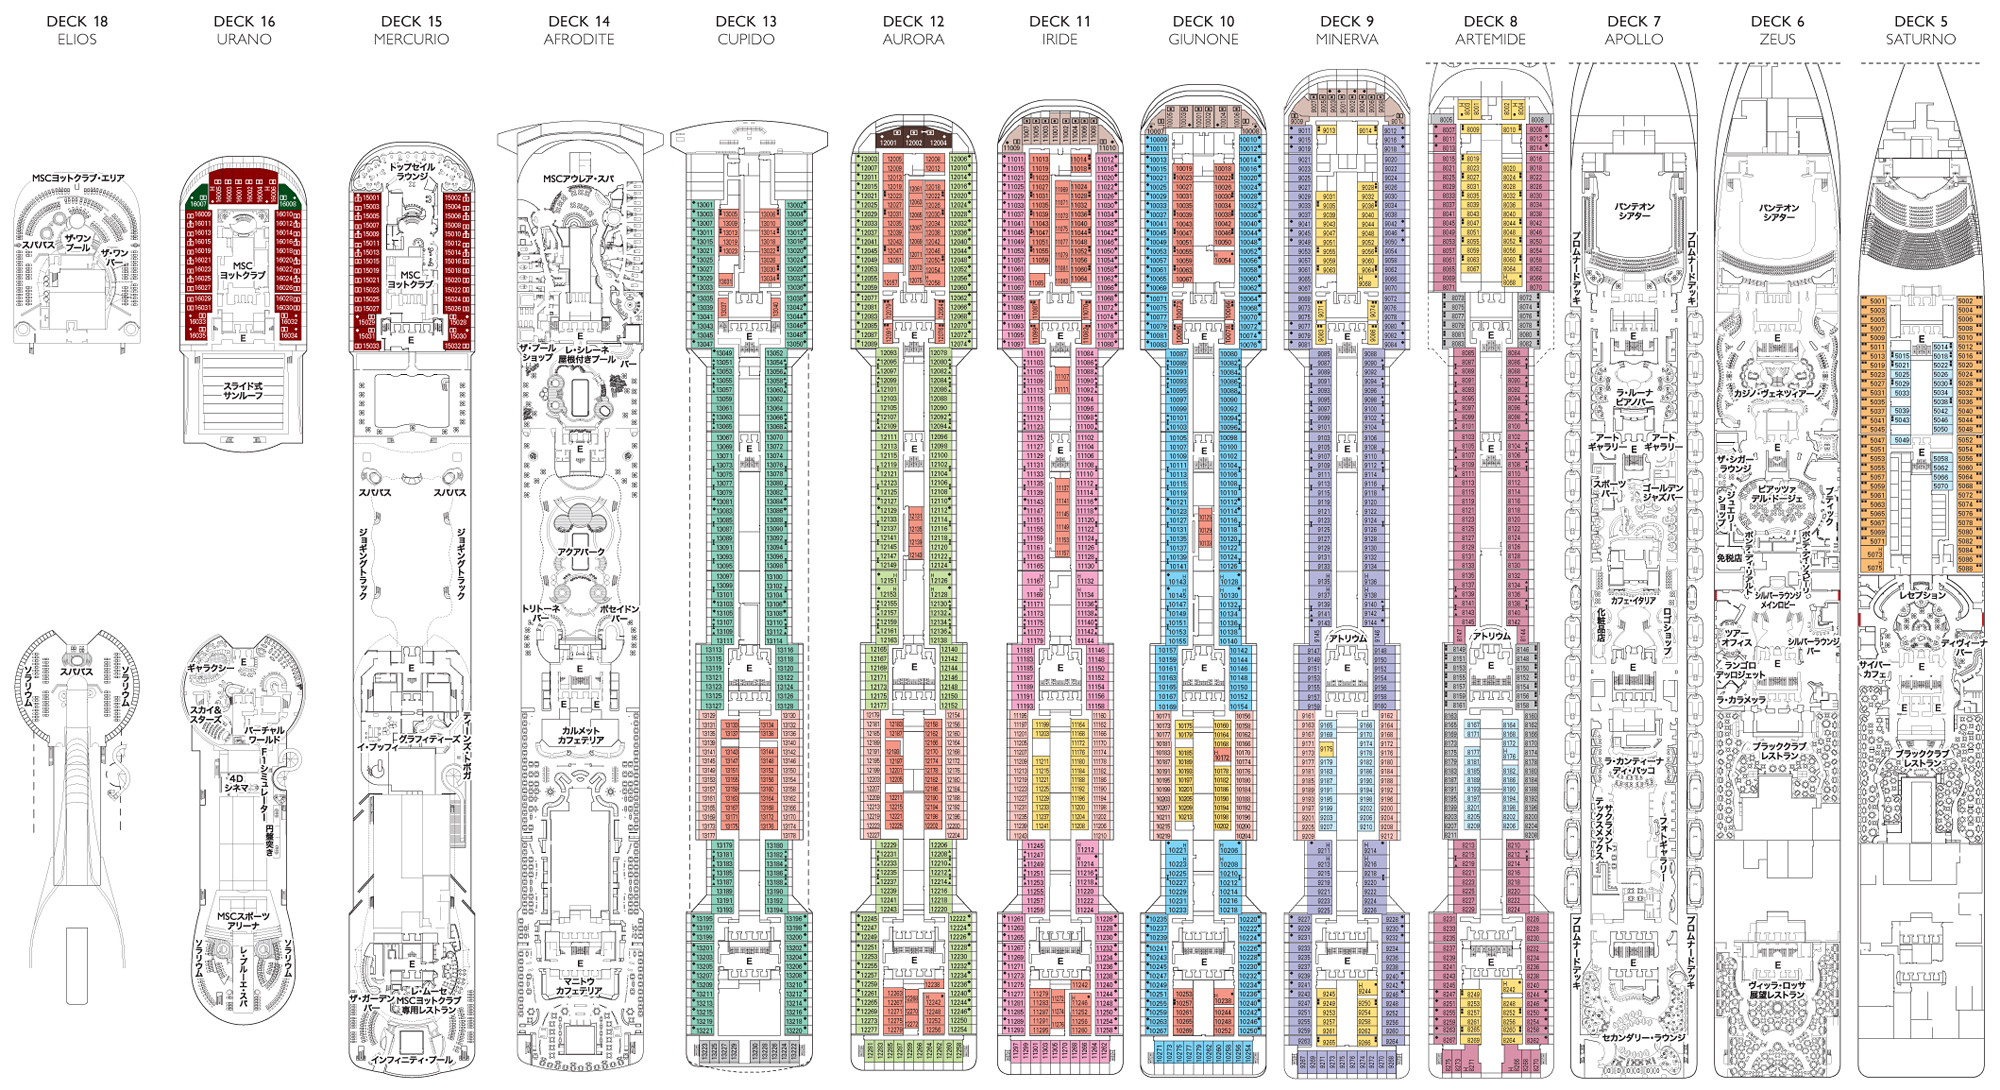 Pin deck plan msc splendida from 24052013 on pinterest for Deckplan msc splendida